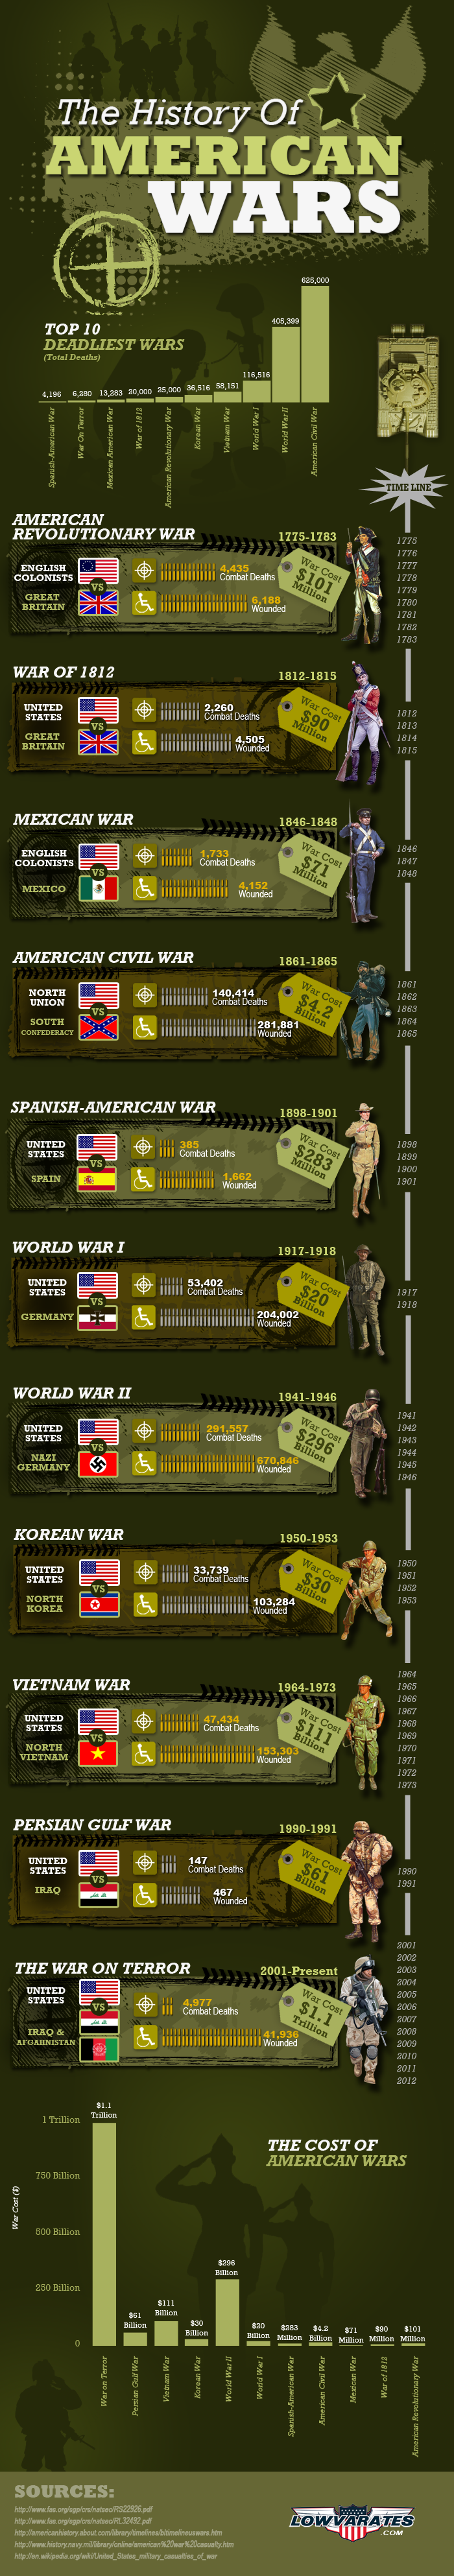 cost american wars history